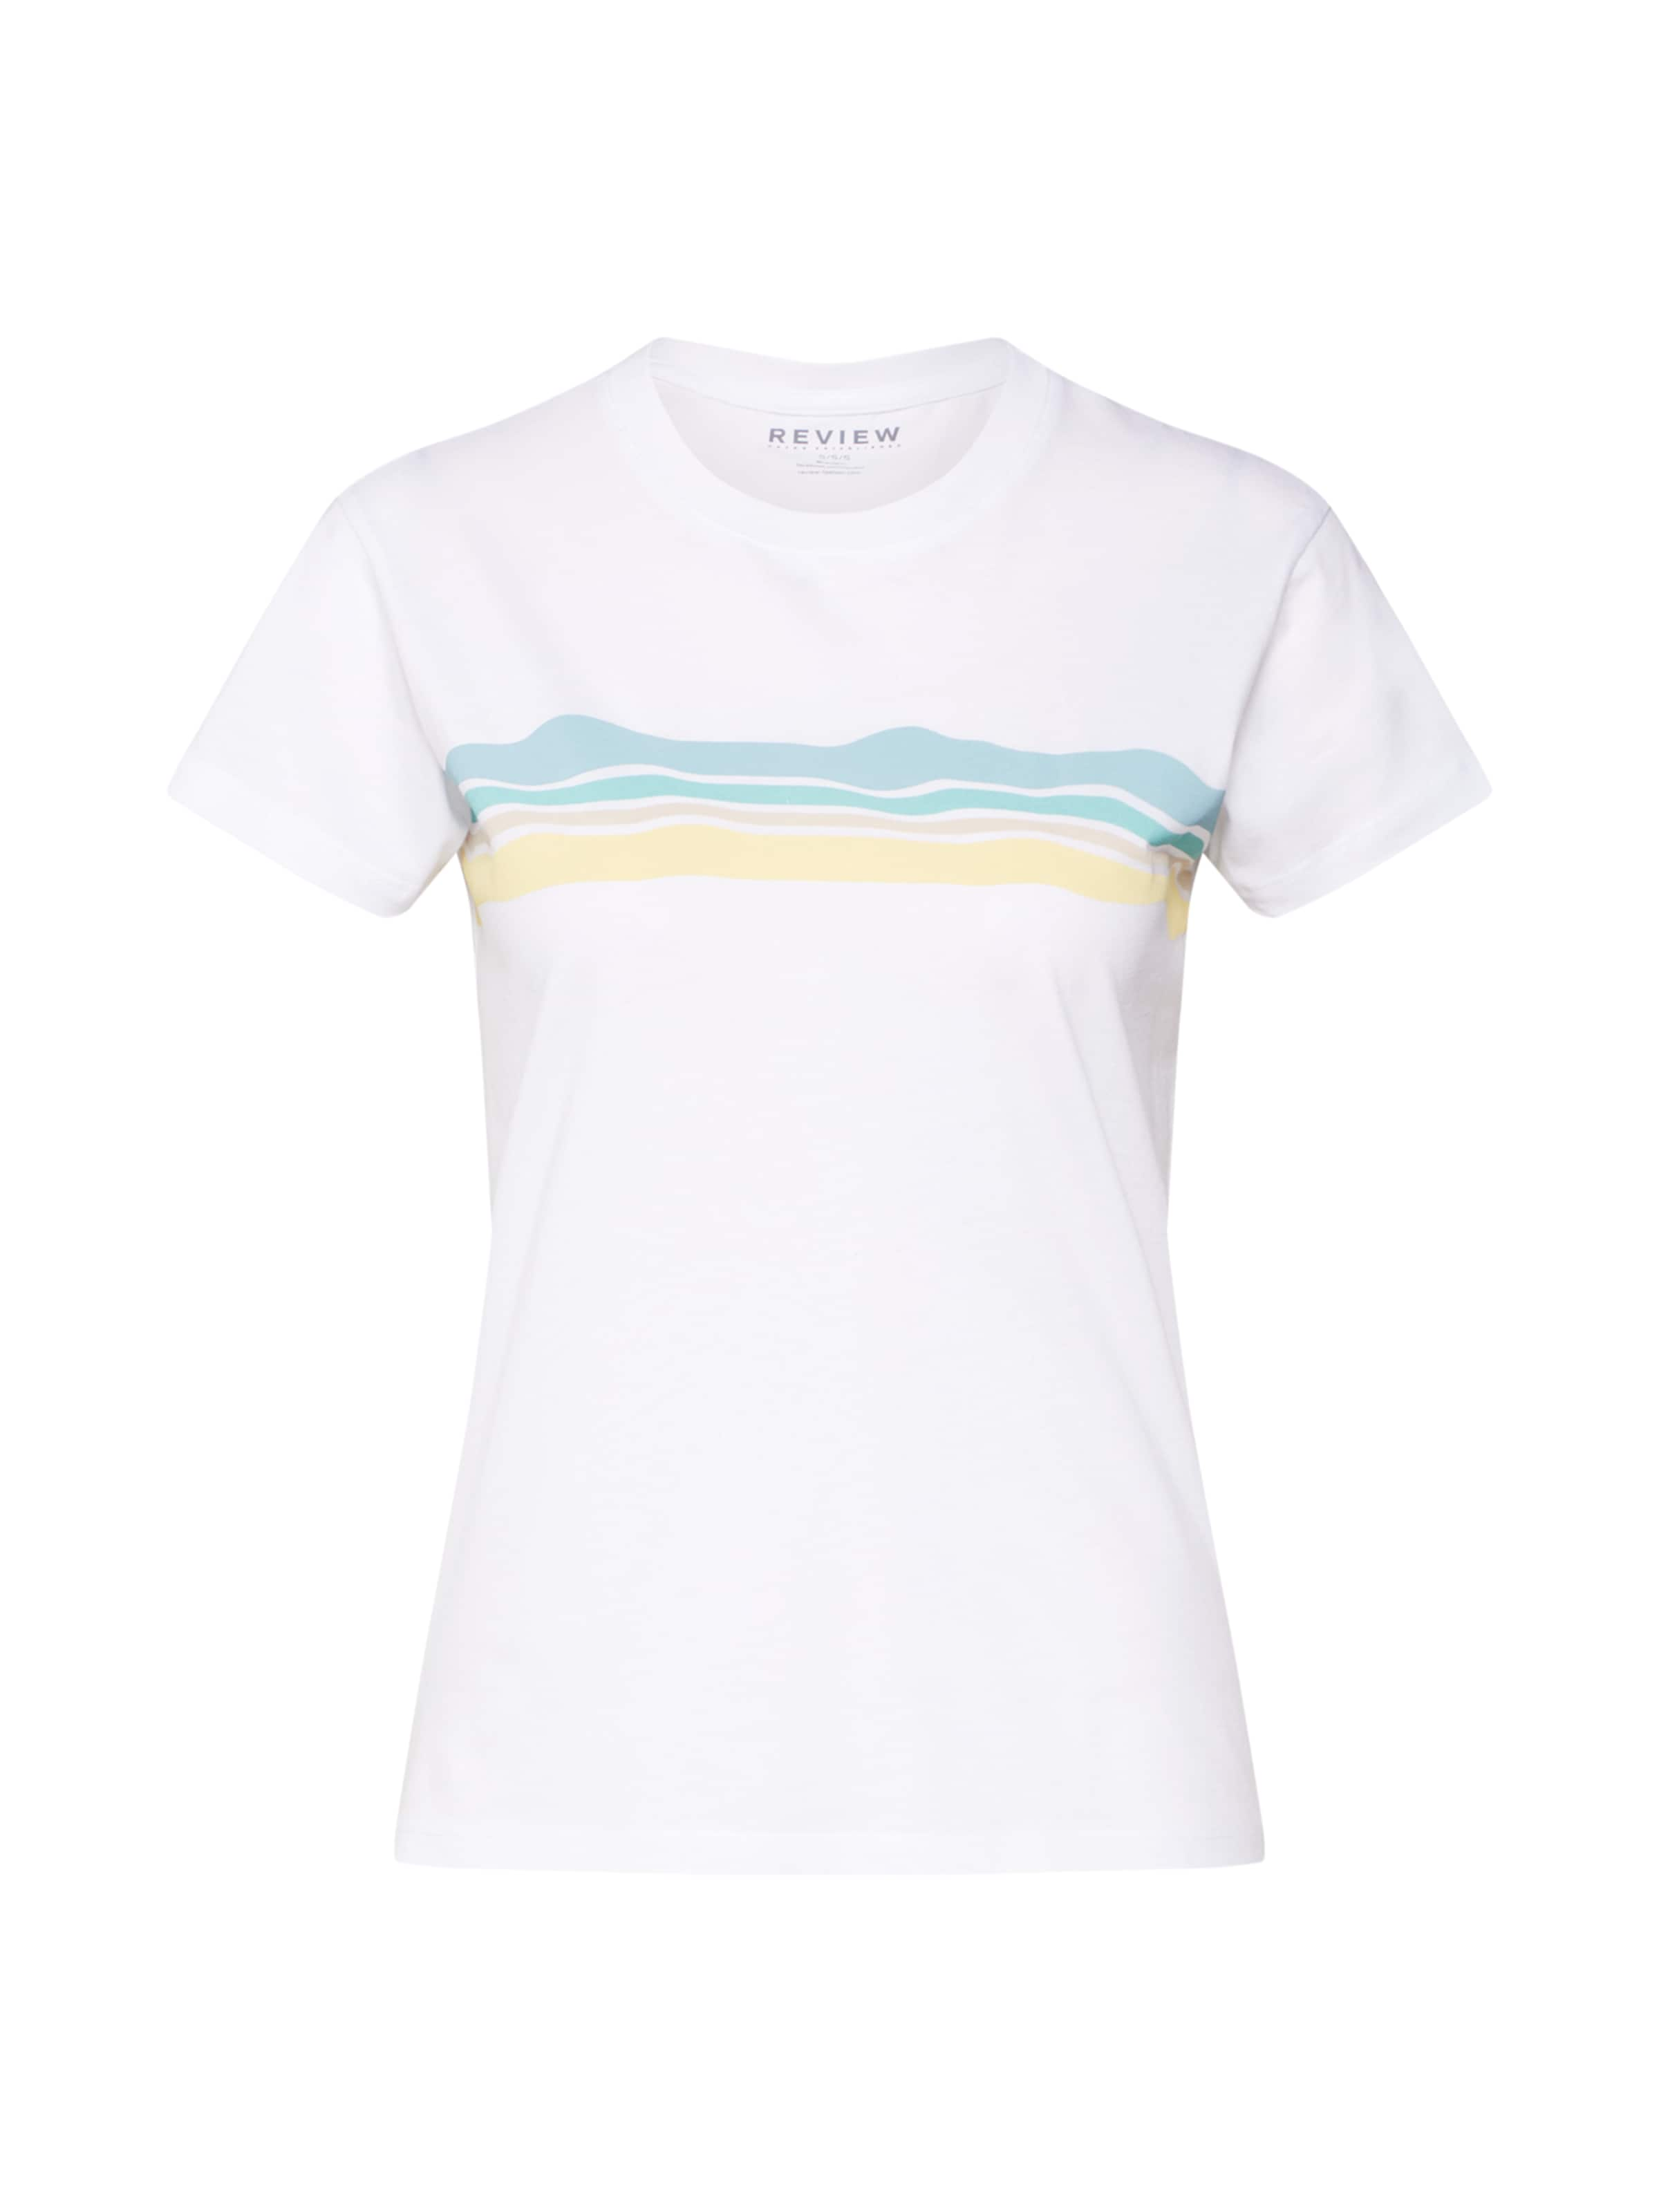 Review shirt FuméJaune Stripe' Bleu En Blanc 't Wave T 34j5LAR